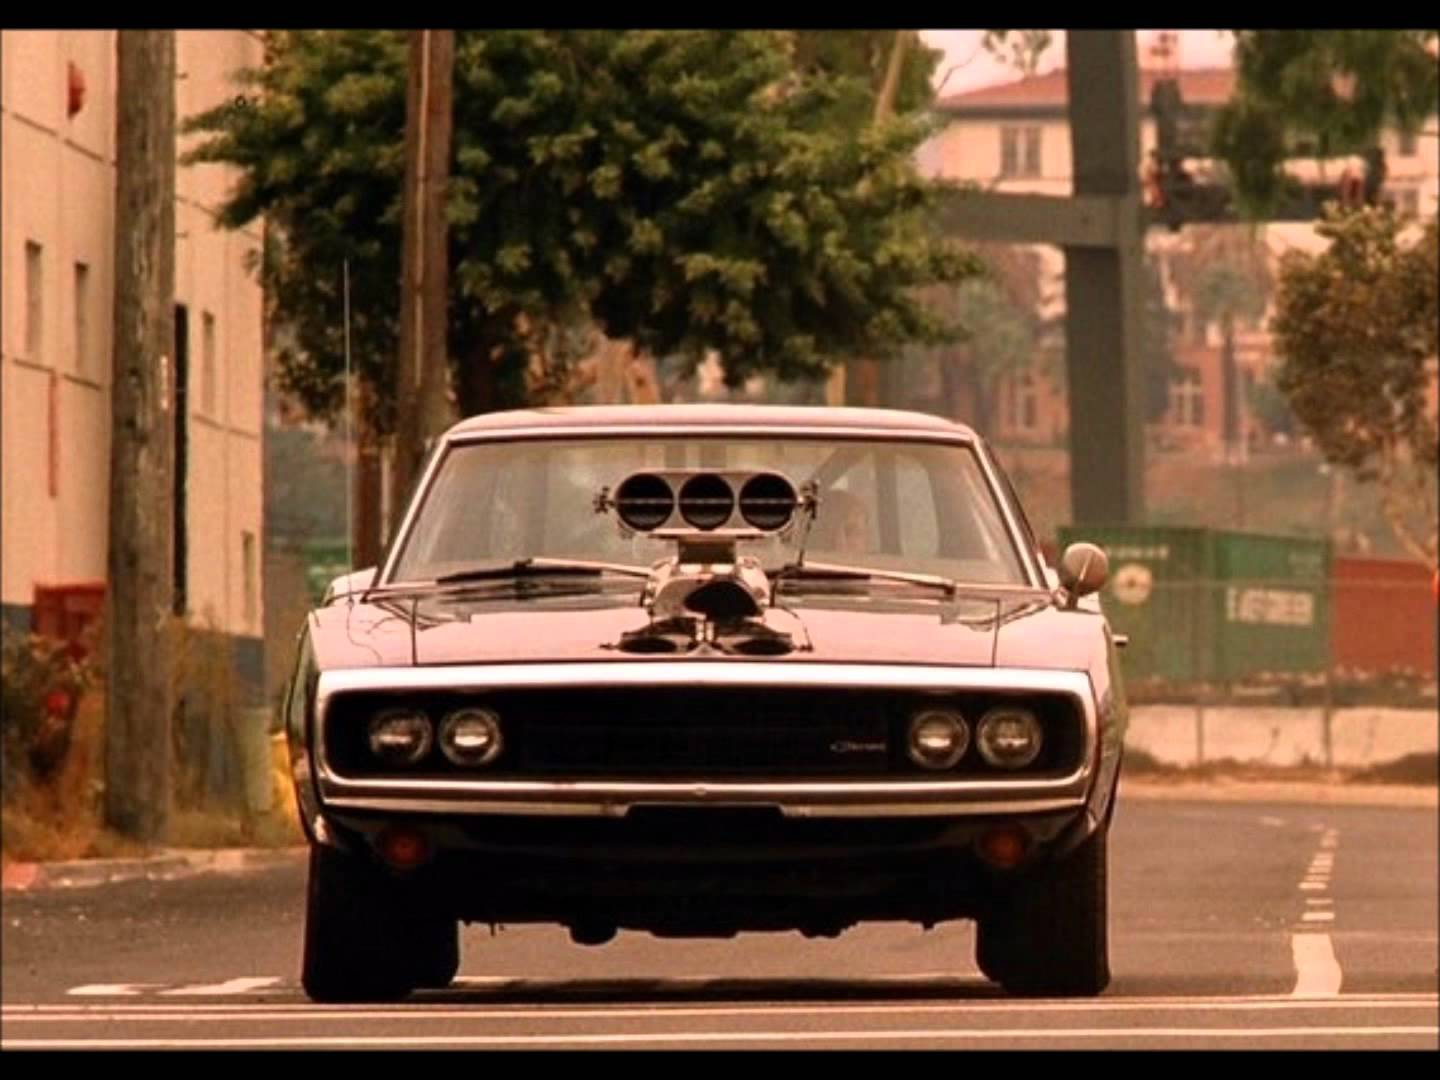 roody's reviews, thoughts and ramblings: ten reasons muscle cars are